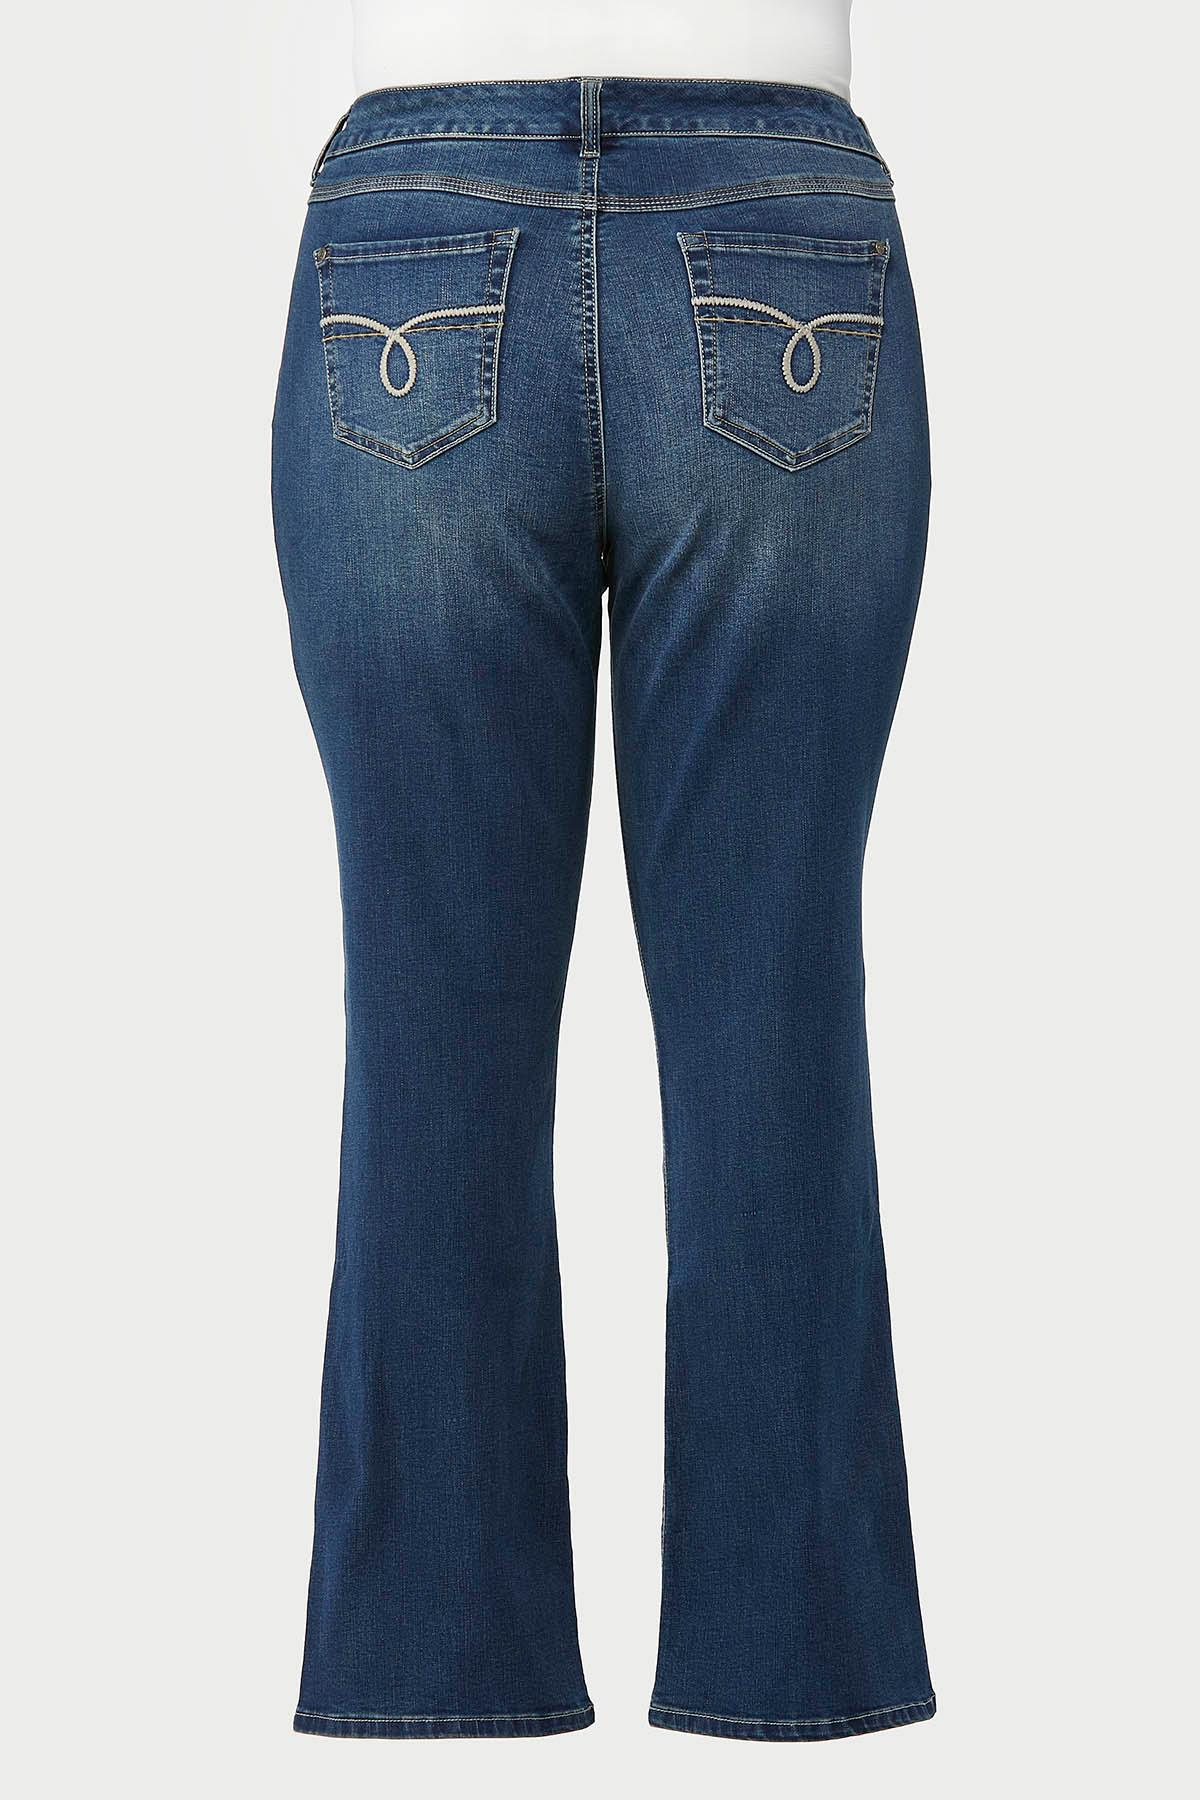 Plus Size Slimming Bootcut Jeans (Item #44694009)